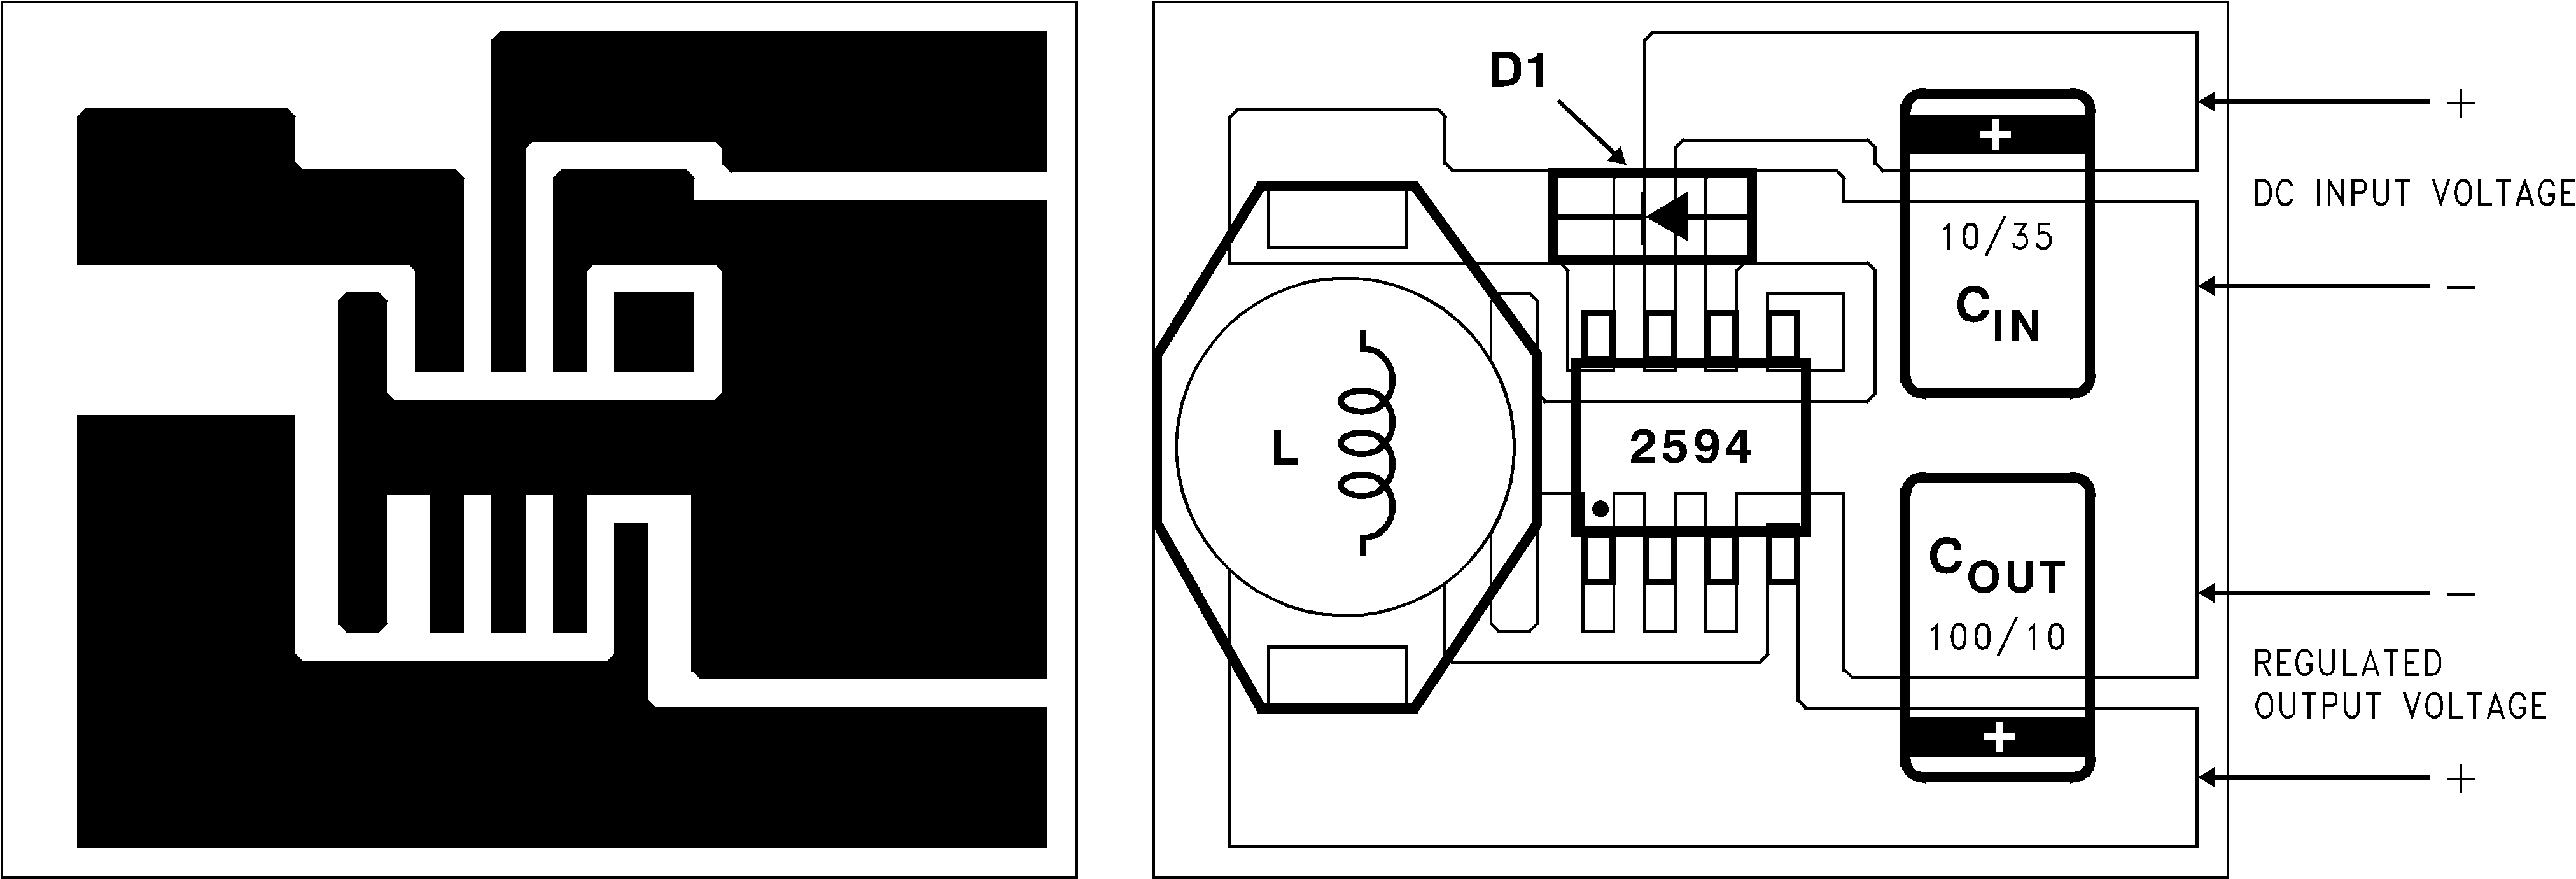 Lm2594hv Schottky Diodes Rectifiers Mounted On A Printed Circuit Boards For 112 Layout Example